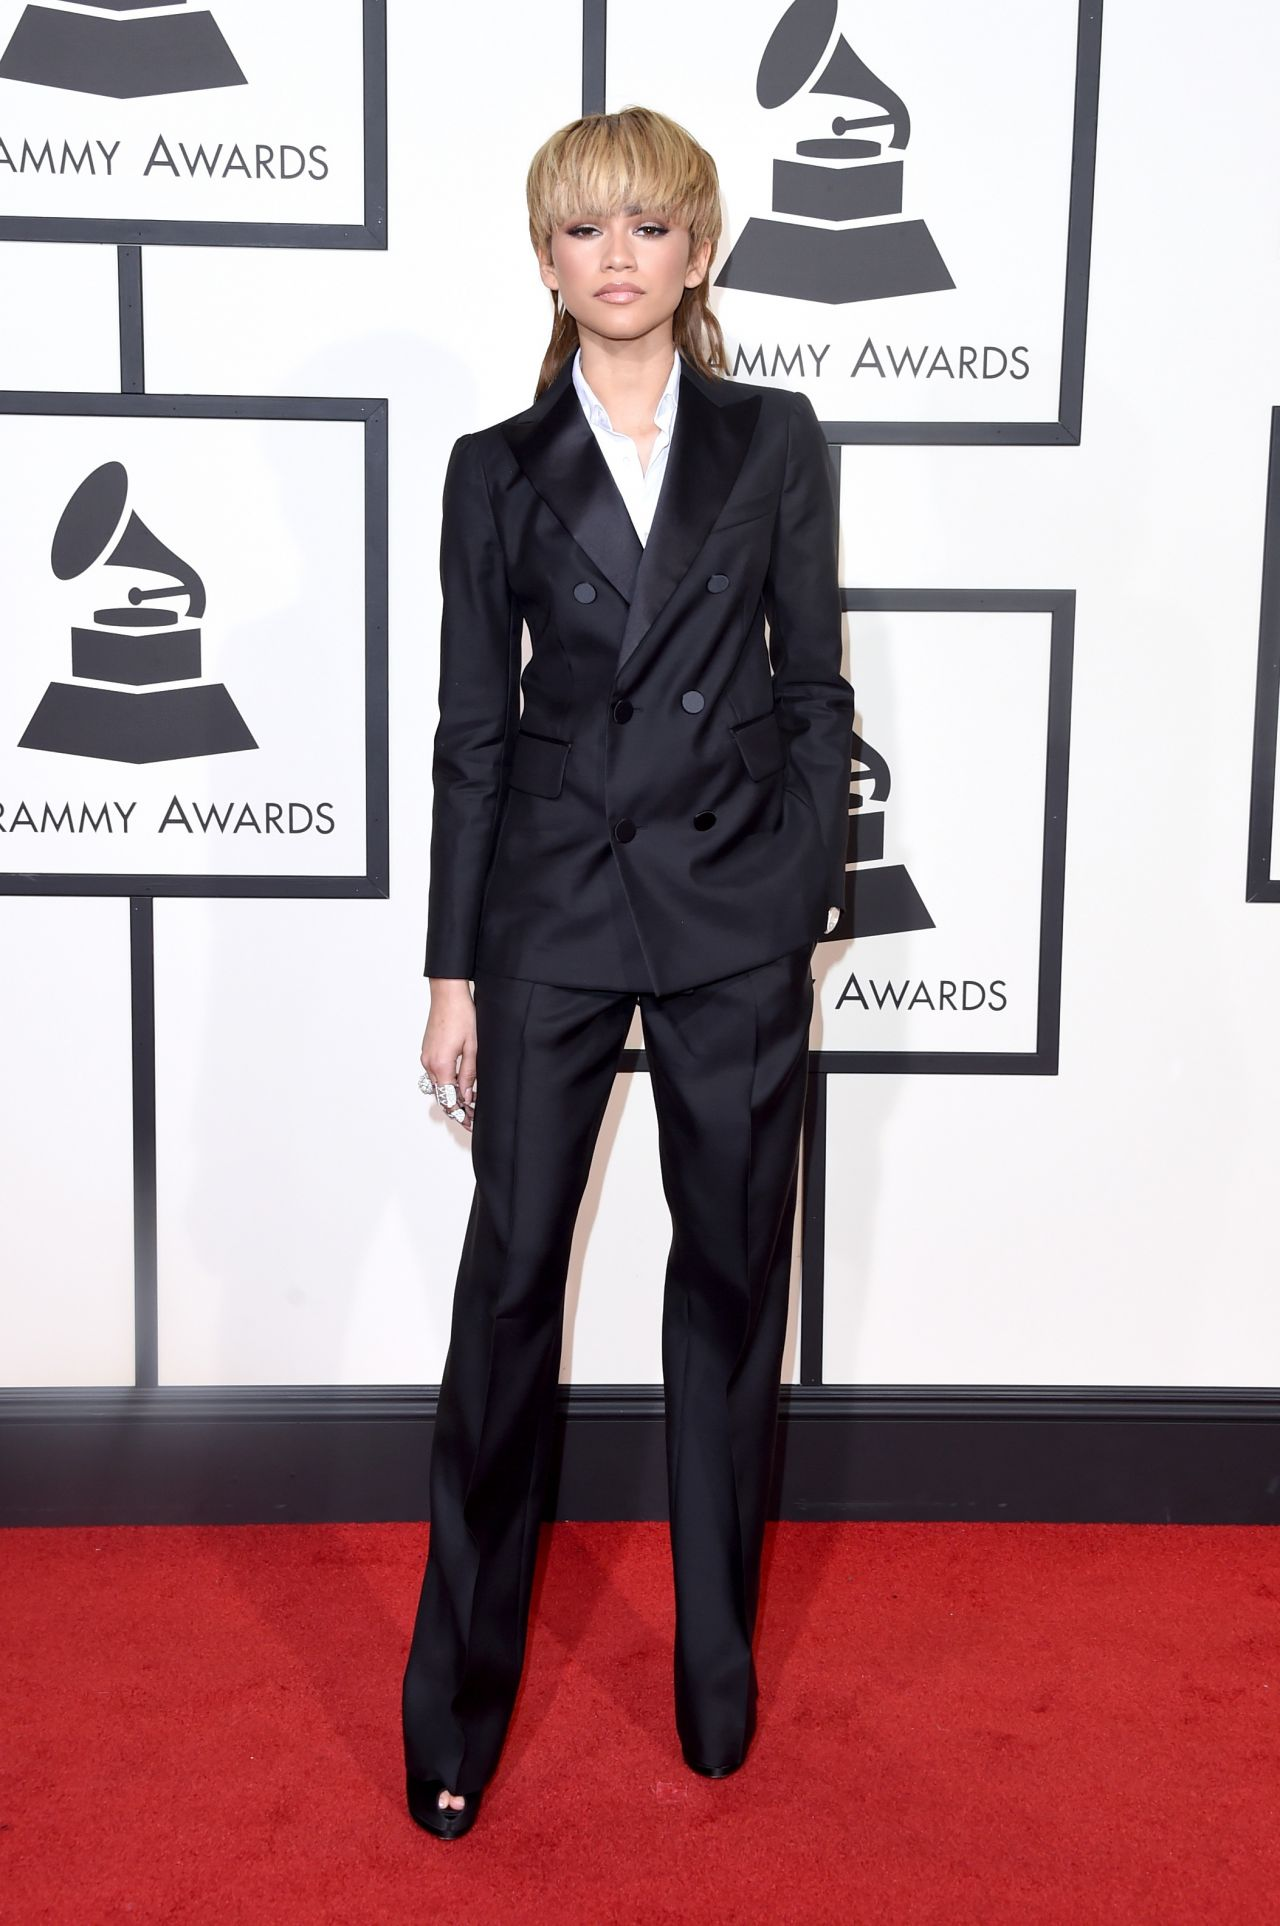 zendaya-2016-grammy-awards-in-los-angeles-ca-8